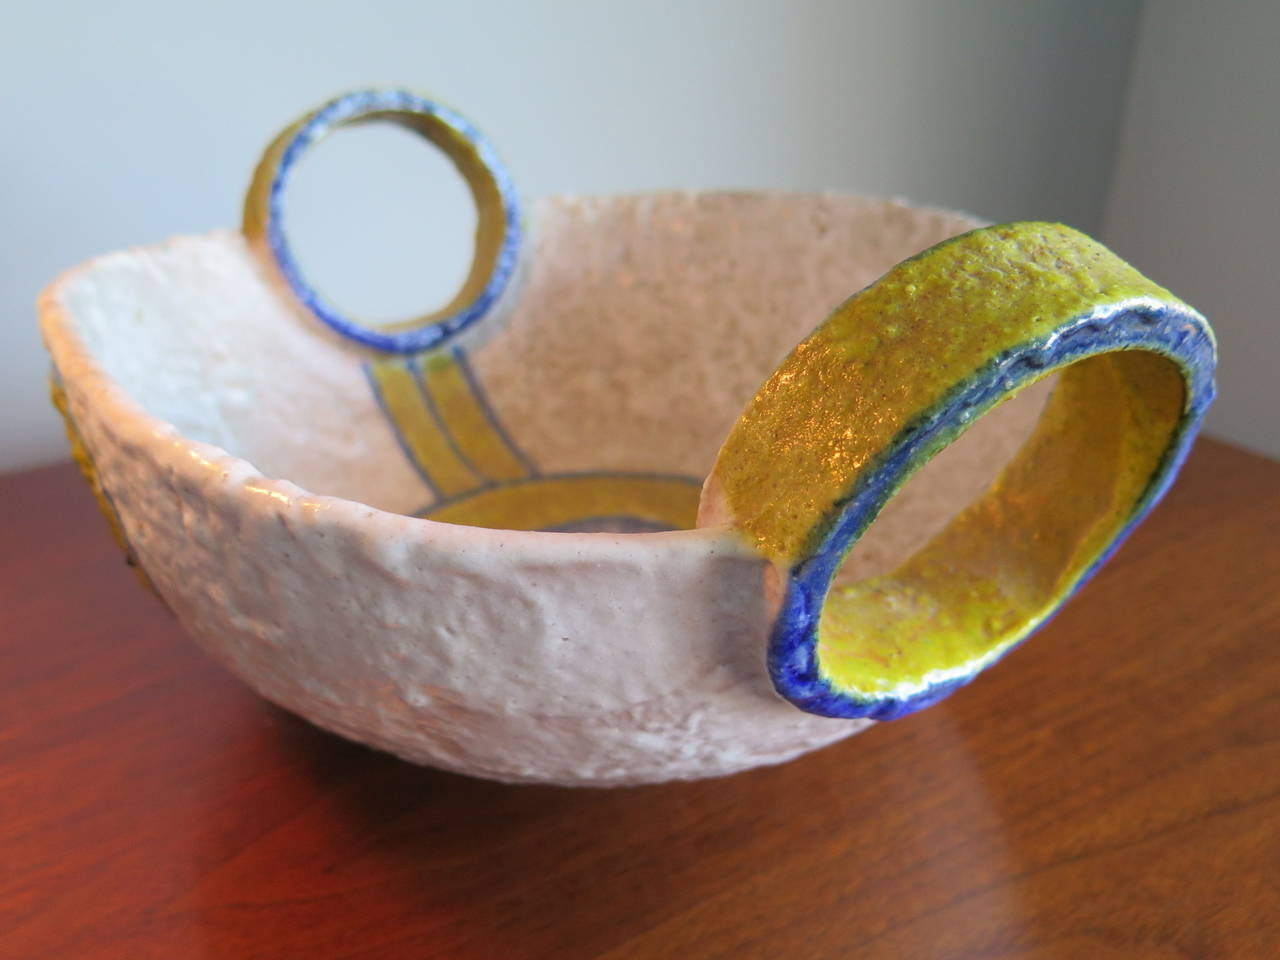 Unusual two-handed vessel by Raymor, Italy, circa 1950s.